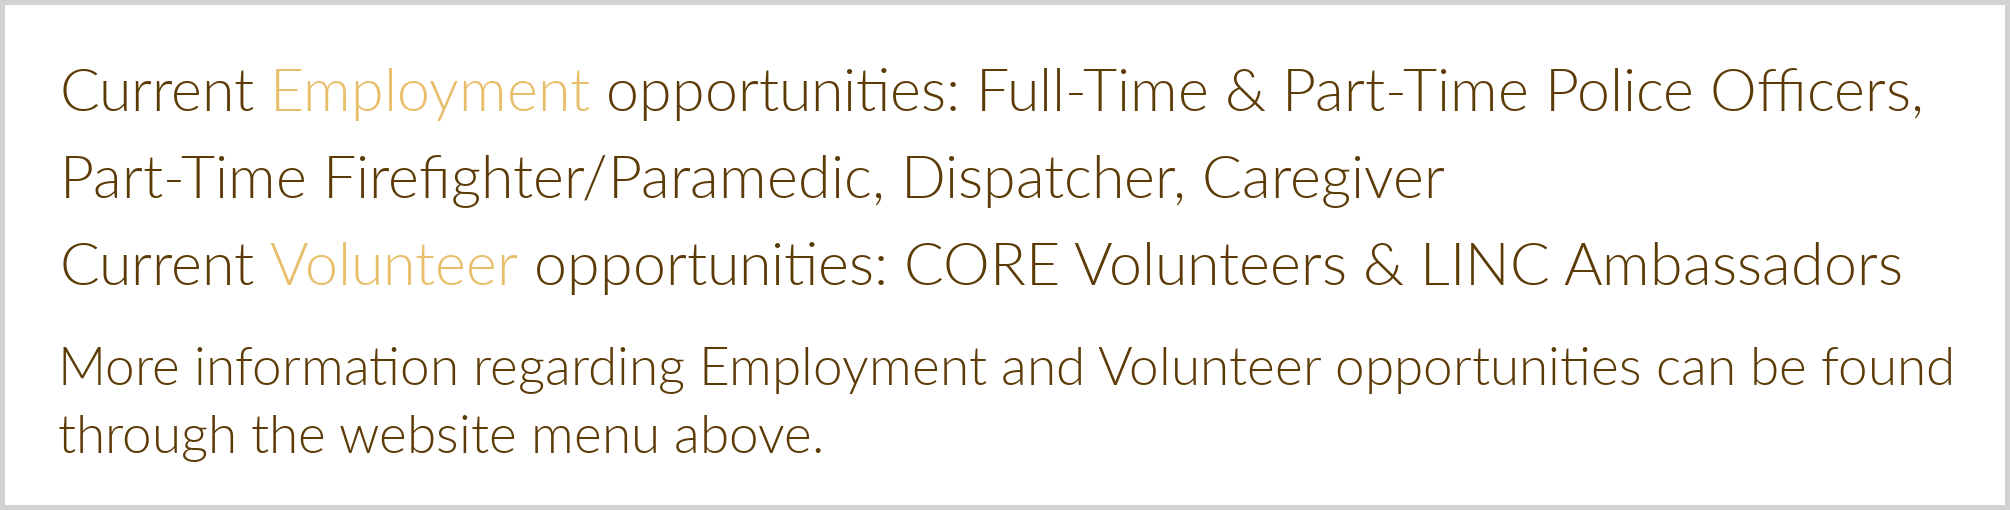 Current Employment and Volunteer Opportunities